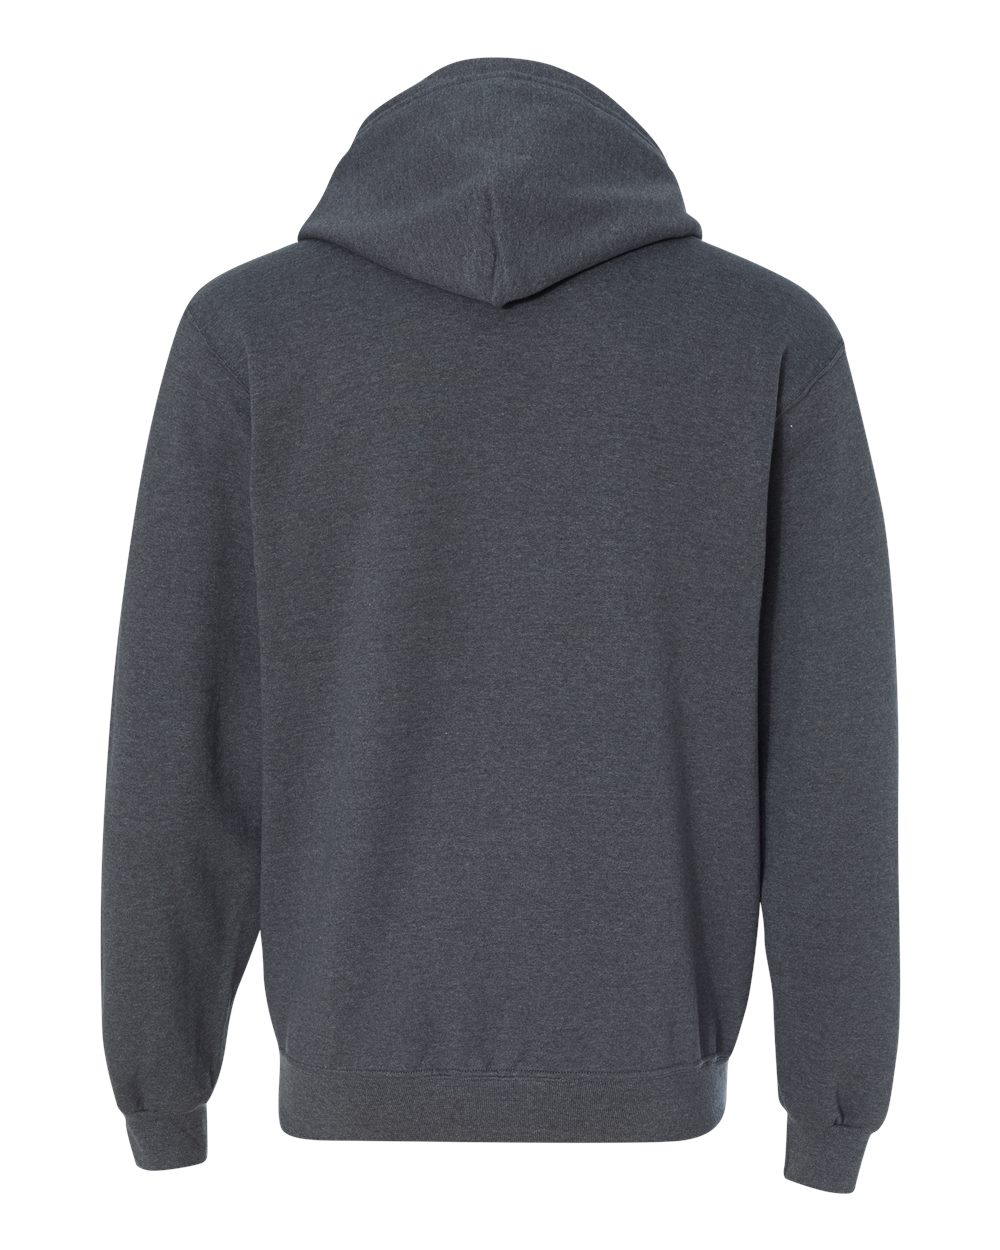 Fruit-of-the-Loom-Mens-Sofspun-Hooded-Full-Zip-Sweatshirt-Blank-SF73R-up-to-3XL thumbnail 16